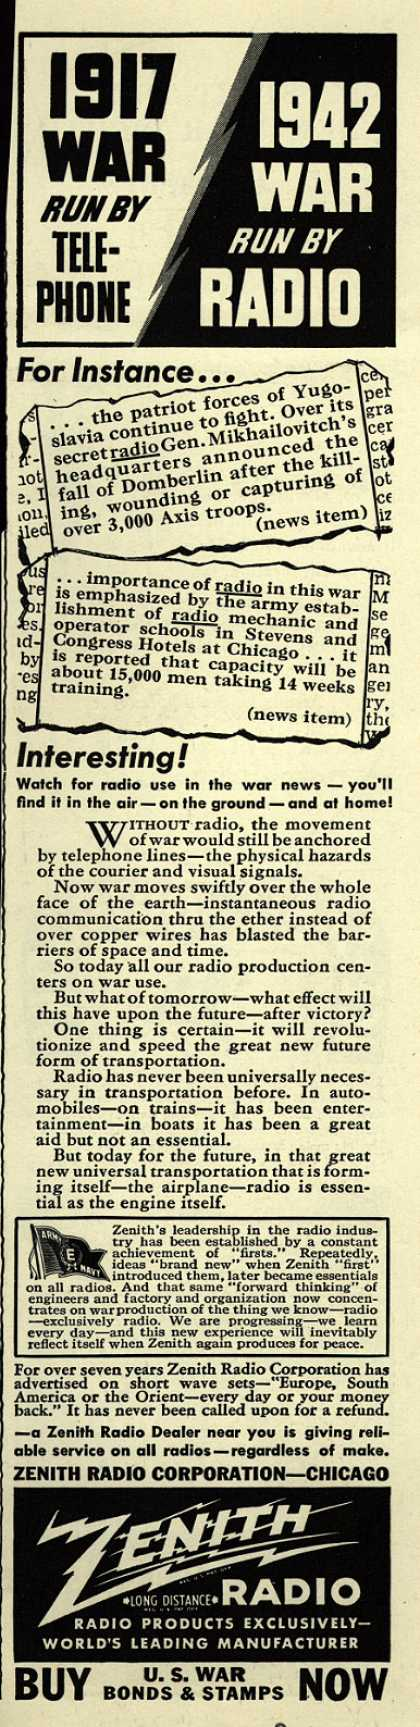 Zenith Radio Corporation's Radio – 1917 War Run By Telephone, 1942 War Run By Radio (1943)